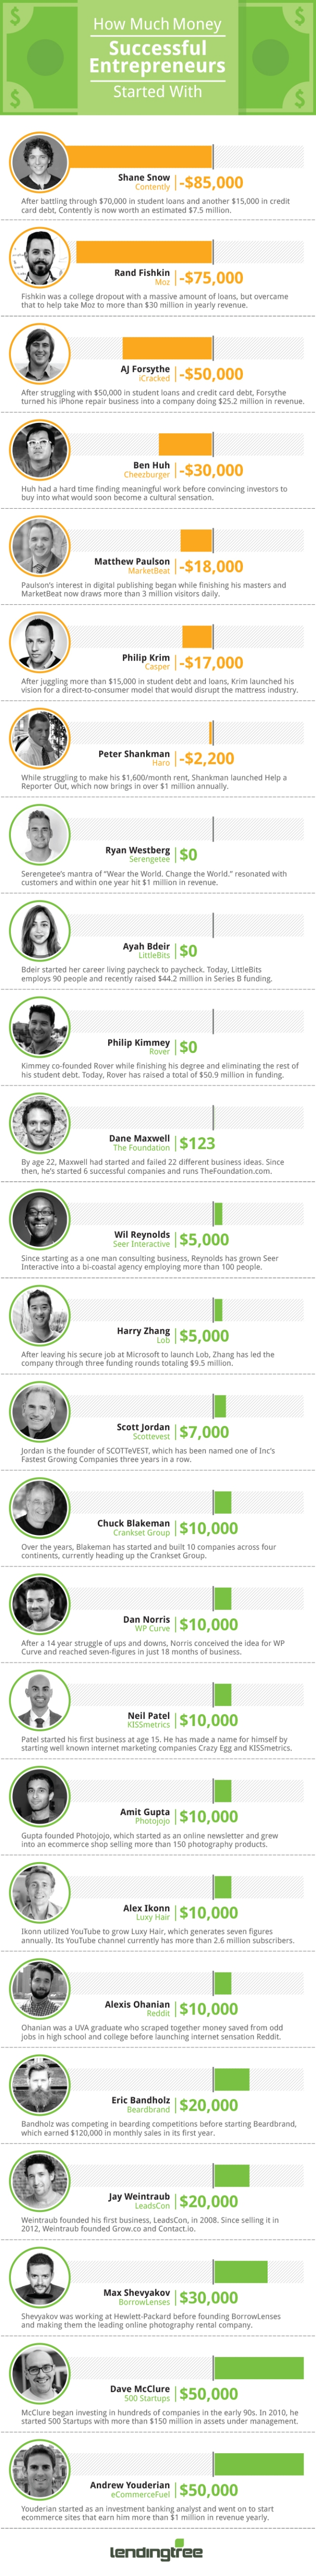 Does it Take Money to Make Money What 25 Entrepreneurs Started Out With